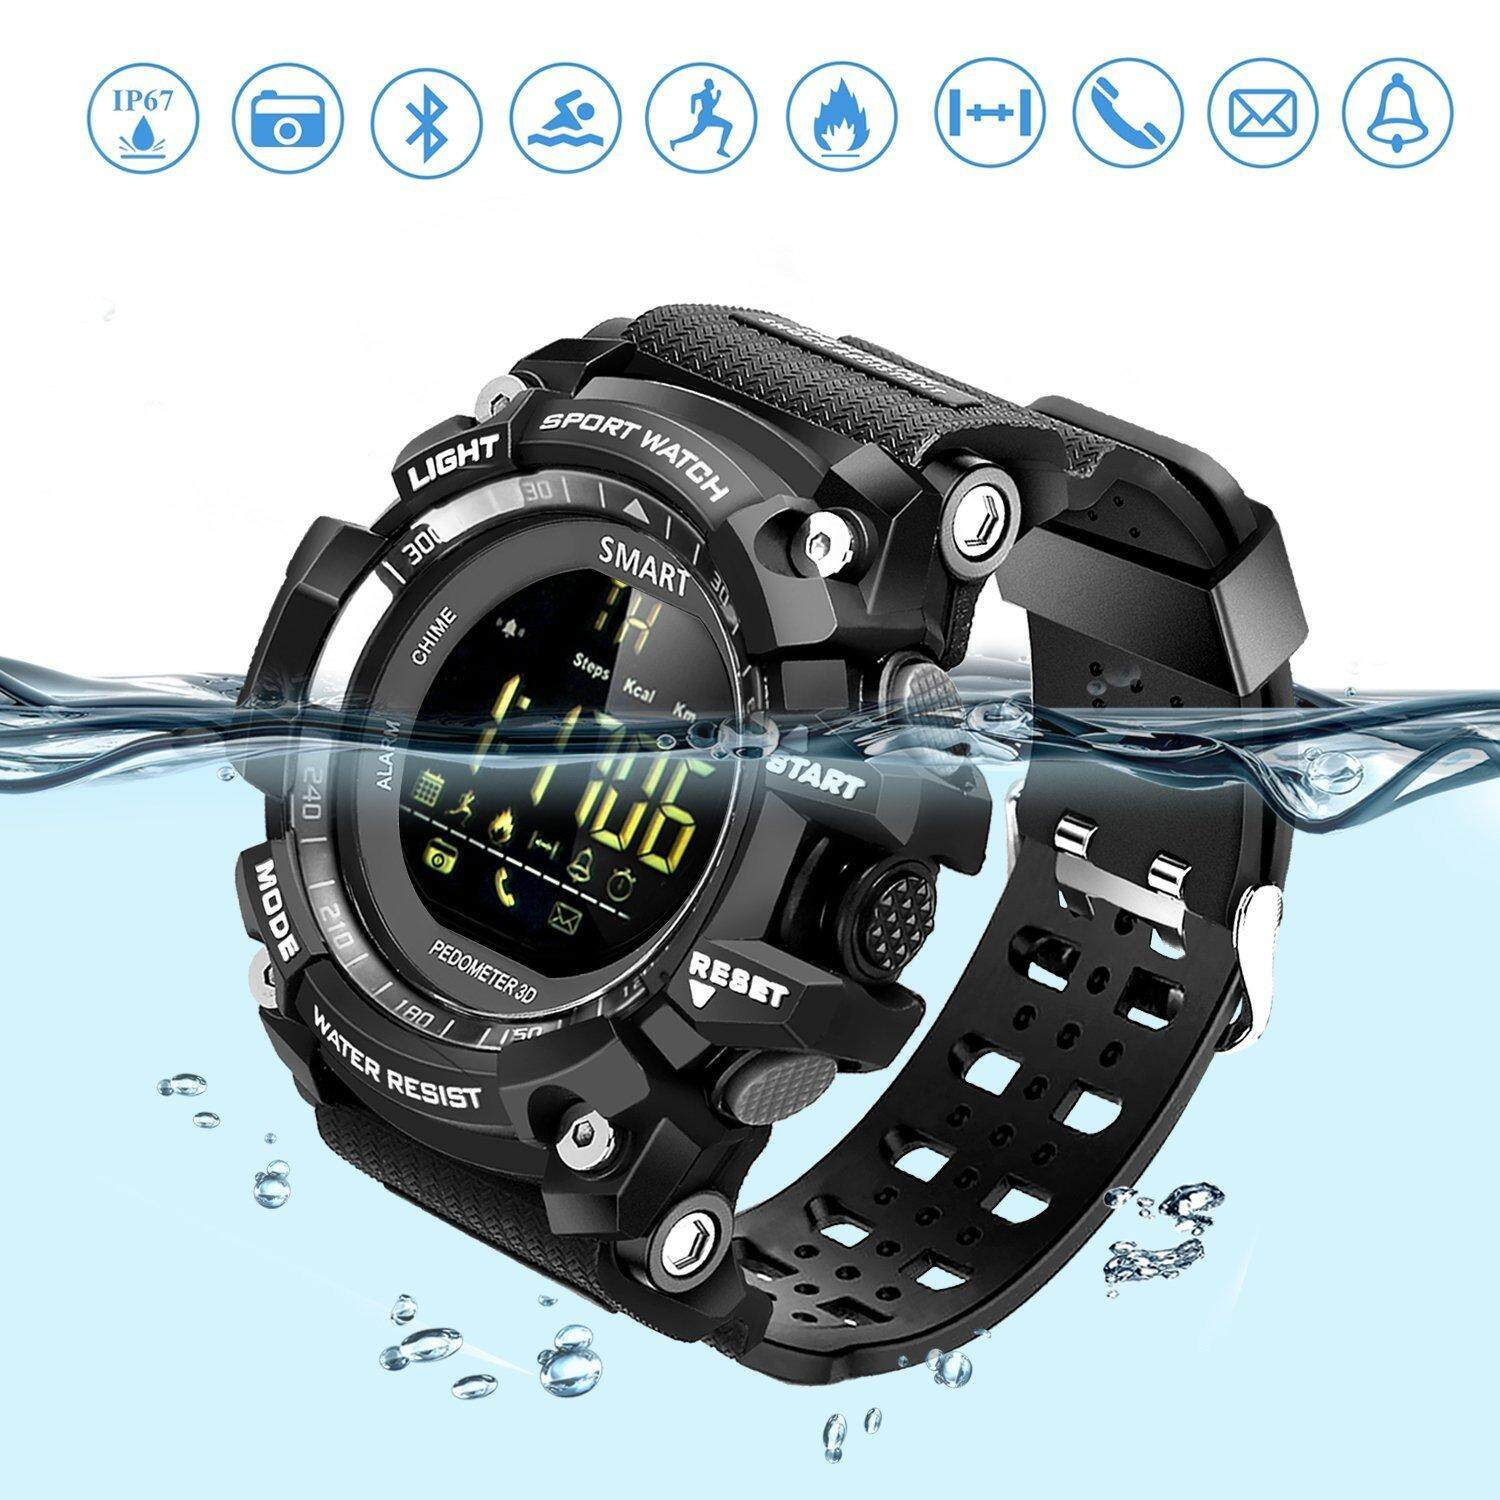 ขาย Jvgood Sports Smart Watch Bluetooth Watch Pedometer Fitness Tracker Wearable Technology Ip67 Waterproof Remote Camera Running Equipment Android And Smartphones Best Choice Men And Boys Black จีน